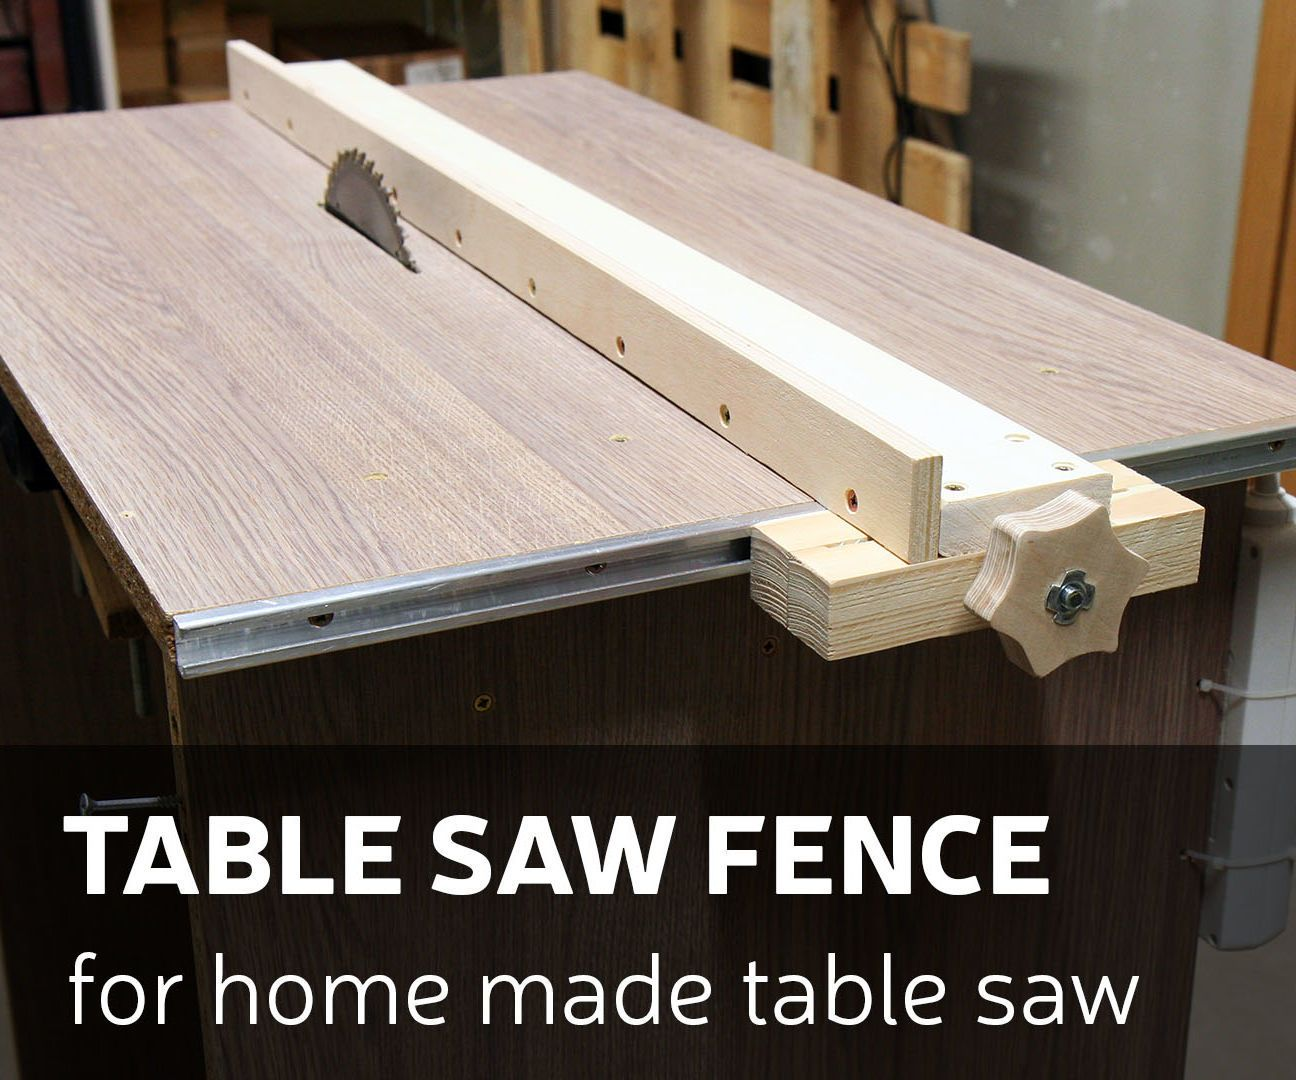 How To Make A Table Saw Fence For Homemade Table Saw Diy Table Saw Fence Table Saw Sled Table Saw